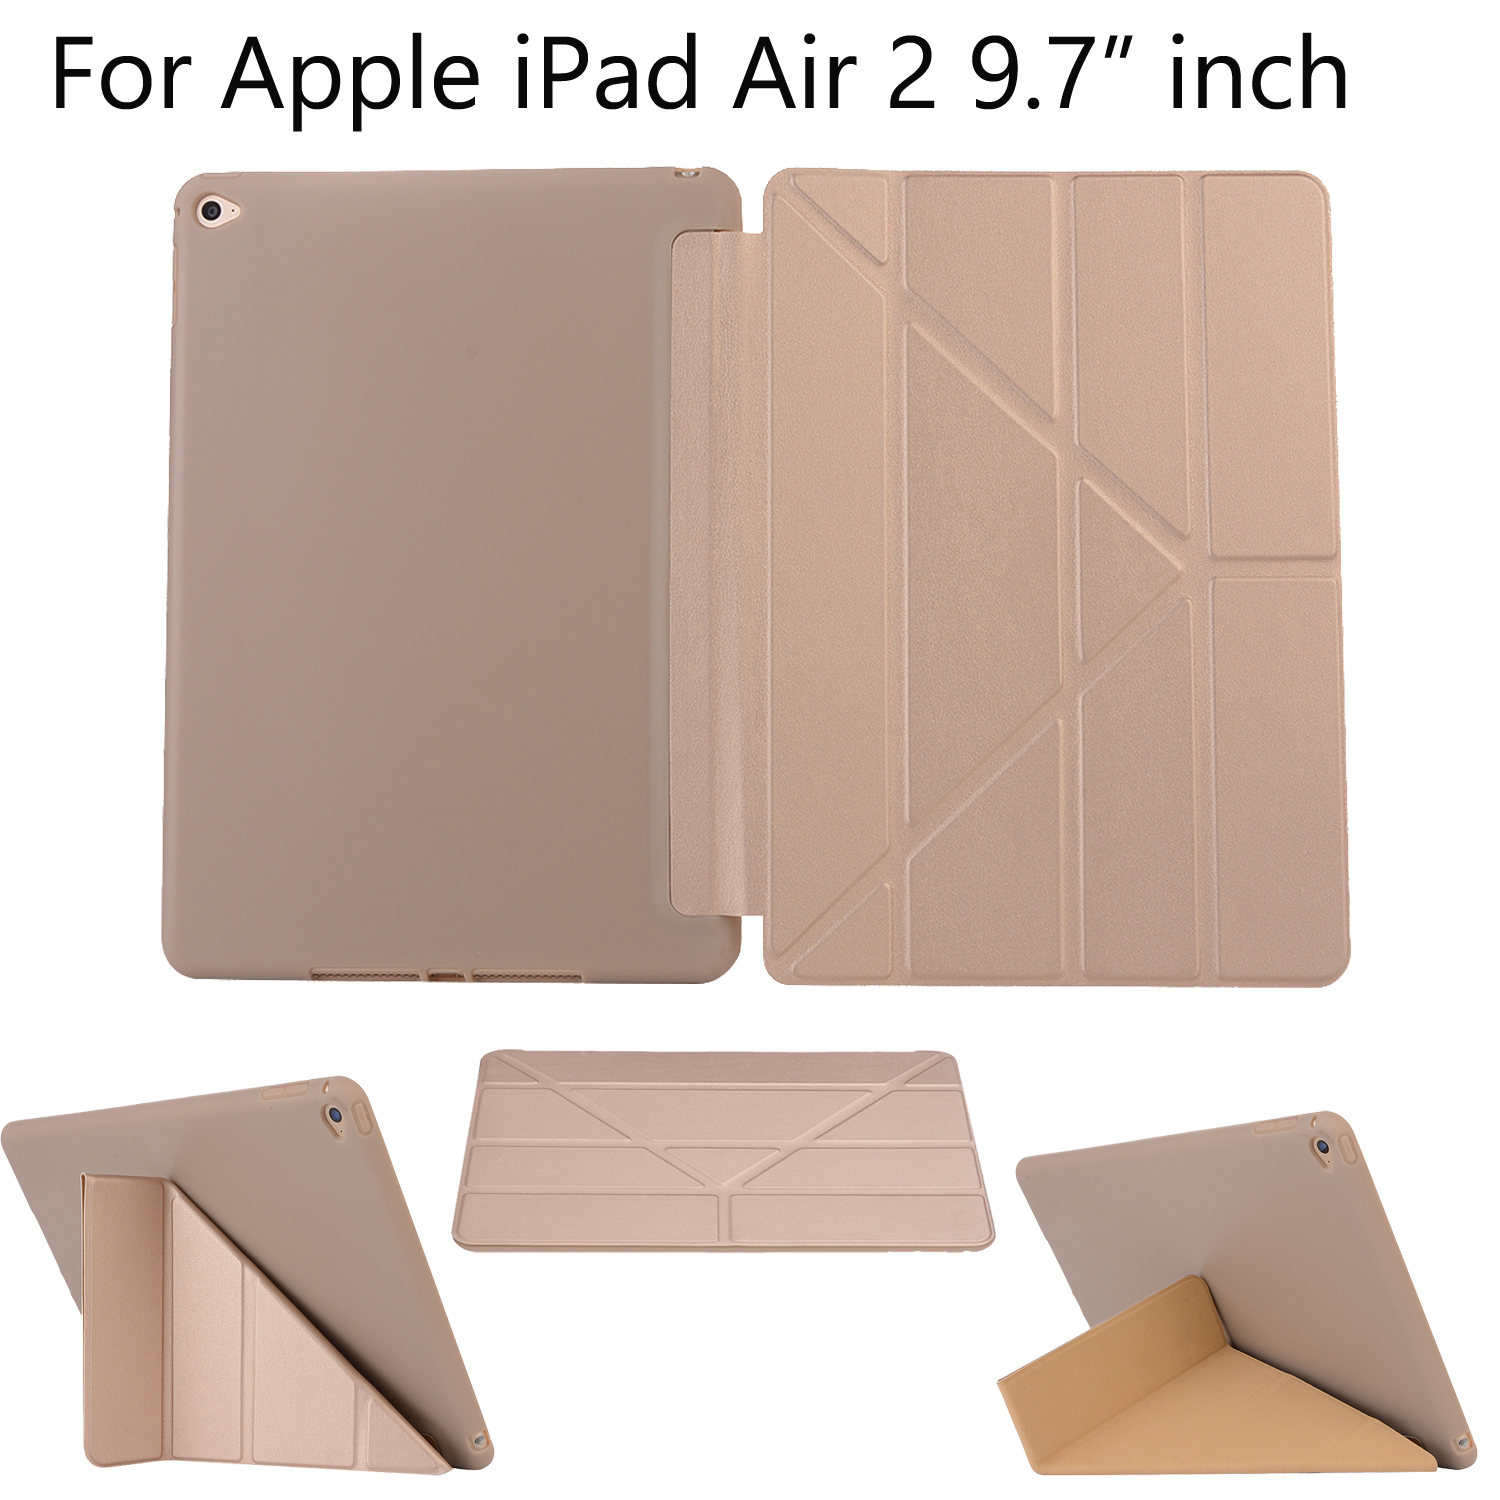 Soft Tablet Cover Case For Apple IPad Air 2 New Smart Holder For Apple IPad Air 2 2014 A1566 A1567 Auto Wake Up Sleep Flip Shell